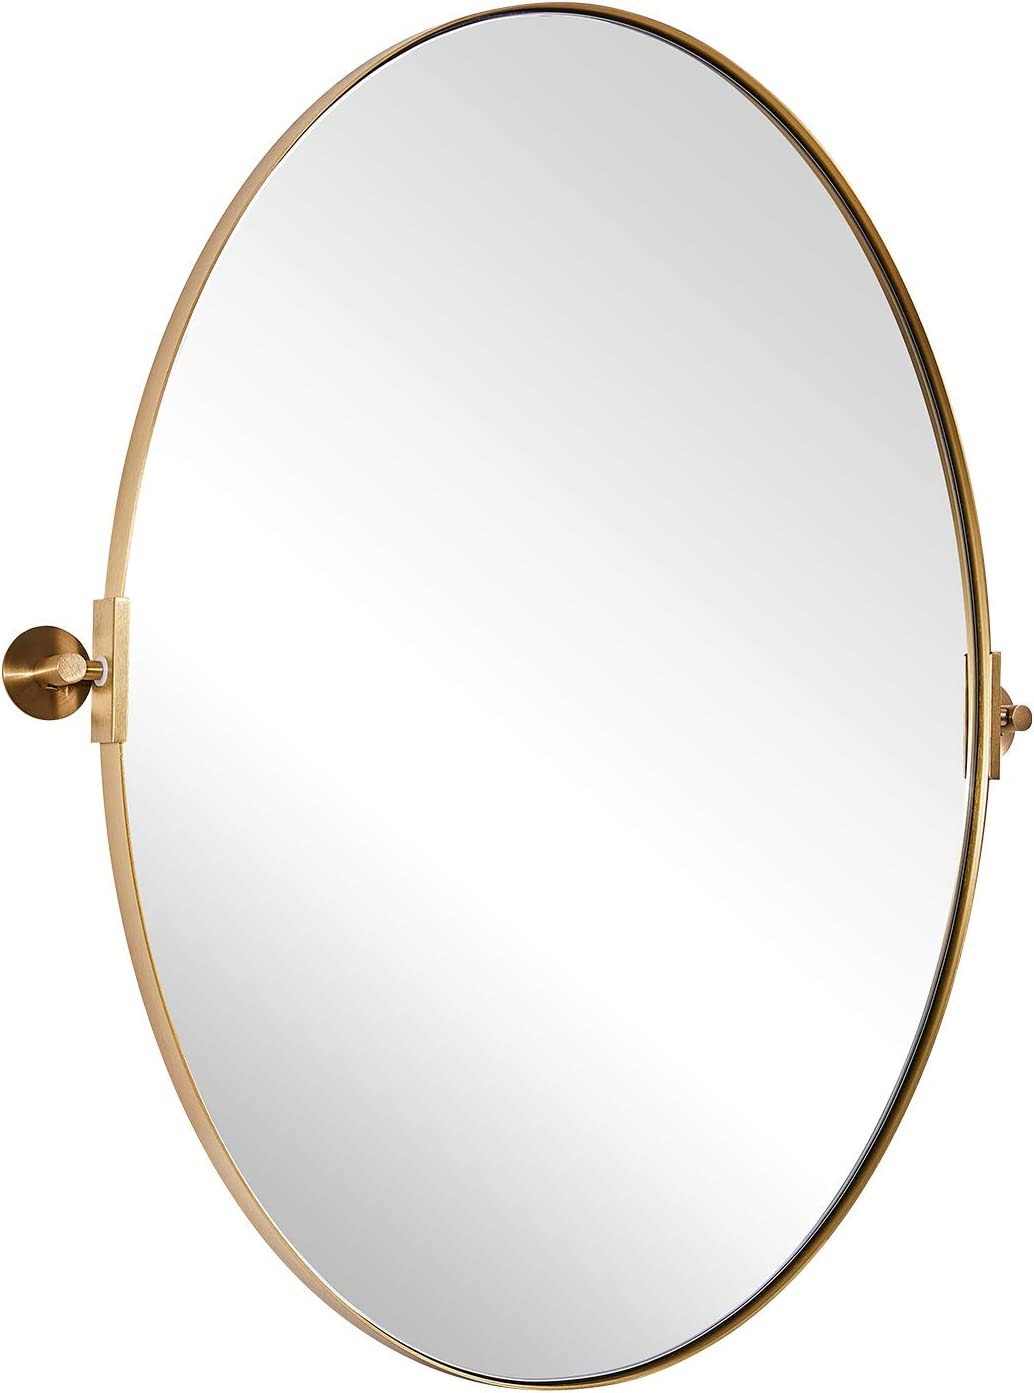 """MOON MIRROR Vanity Wall Mirror, 22x30 Brushed Gold Oval Bathroom Mirror in Stainless Steel Frame 1"""" Deep Set Design, Wall Mounted Mirror Hangs Vertical: Home & Kitchen"""